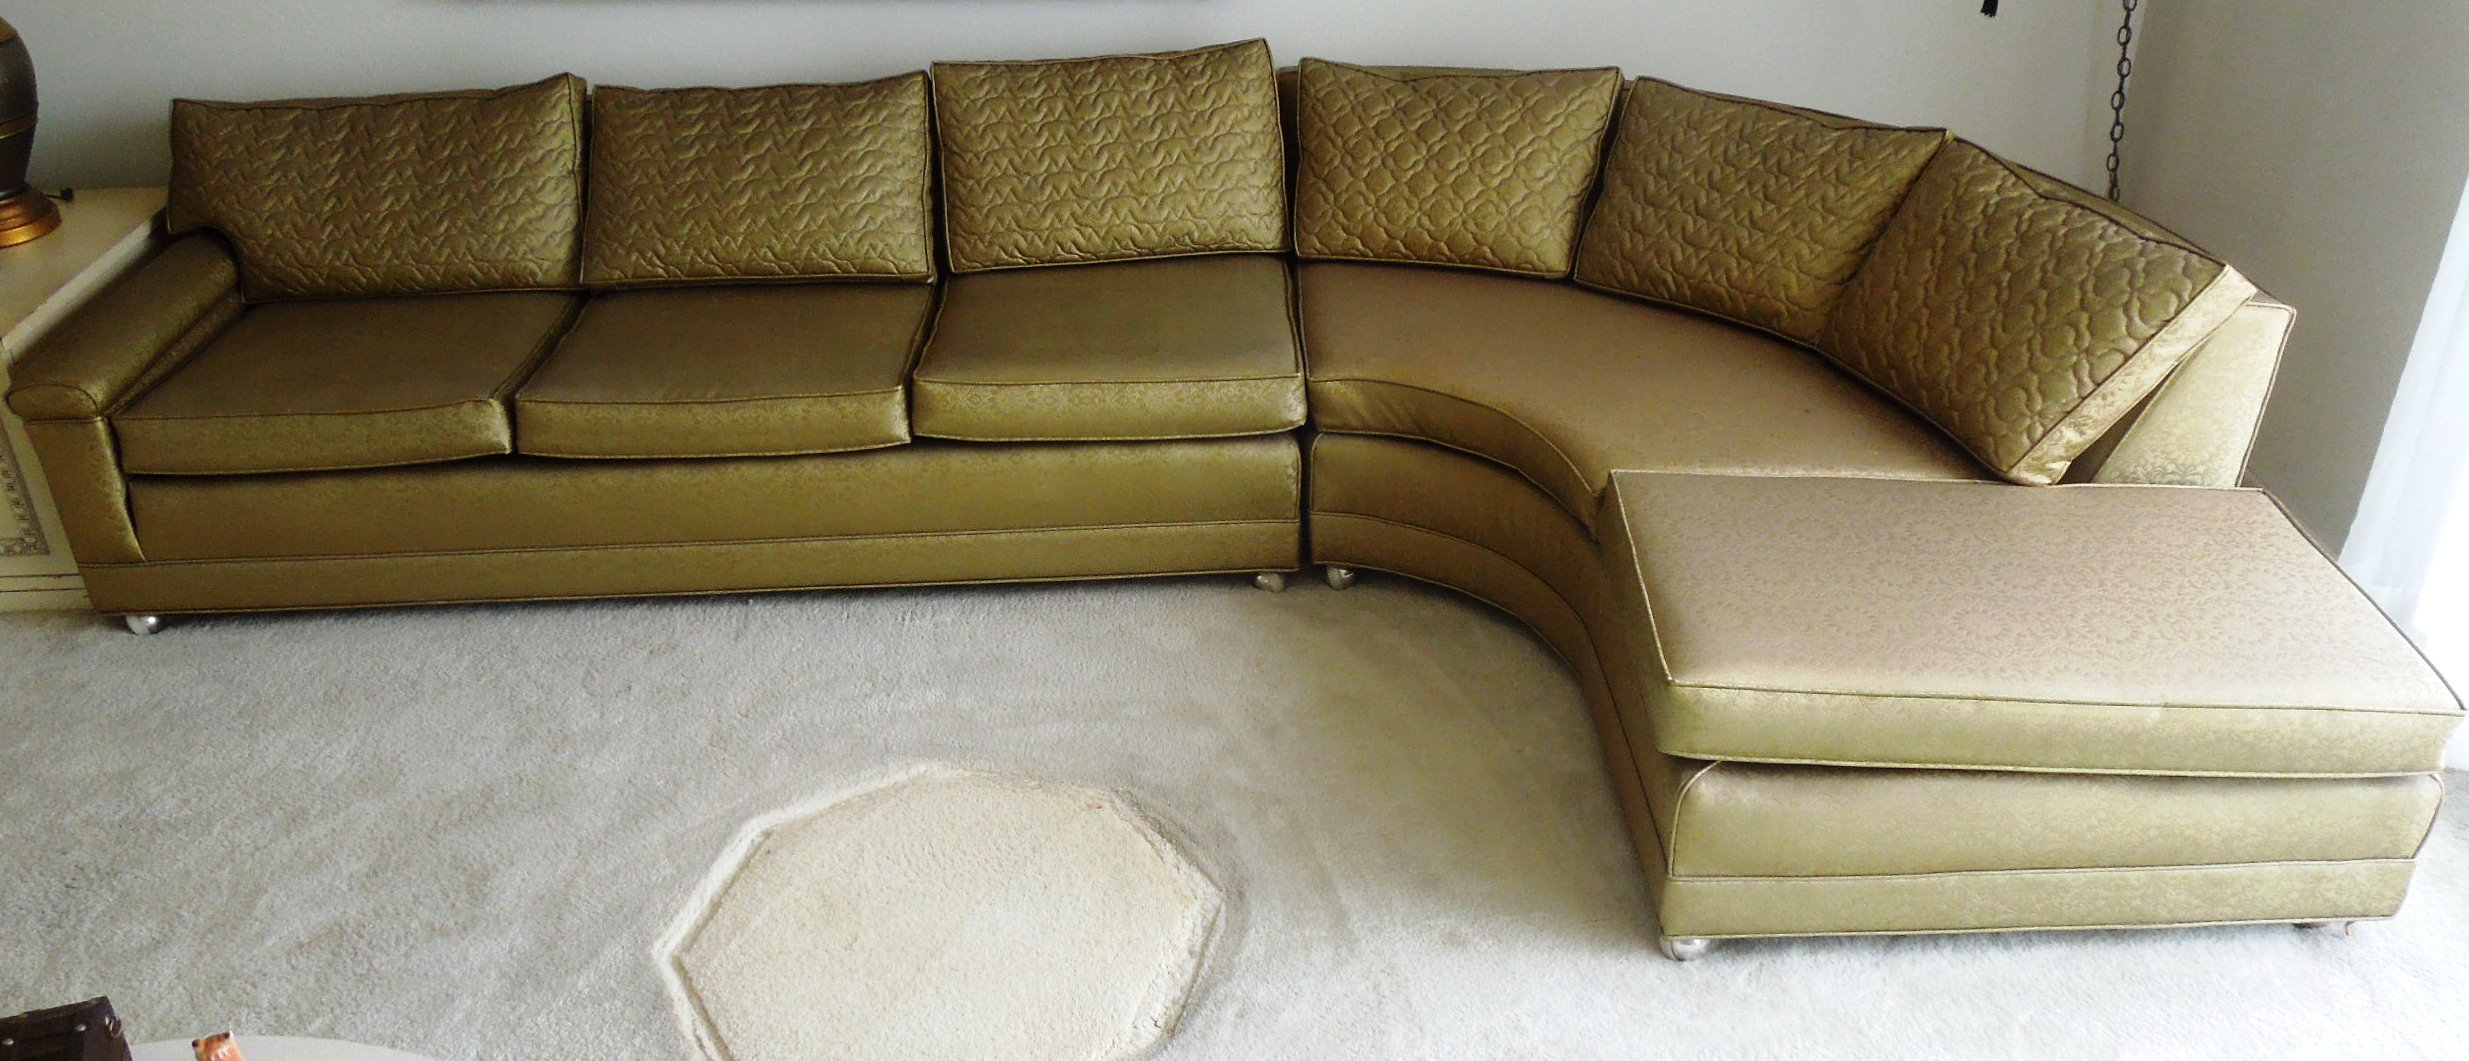 Vintage 1960s sofa couch vinyl gold color for sale for Sofa couch for sale